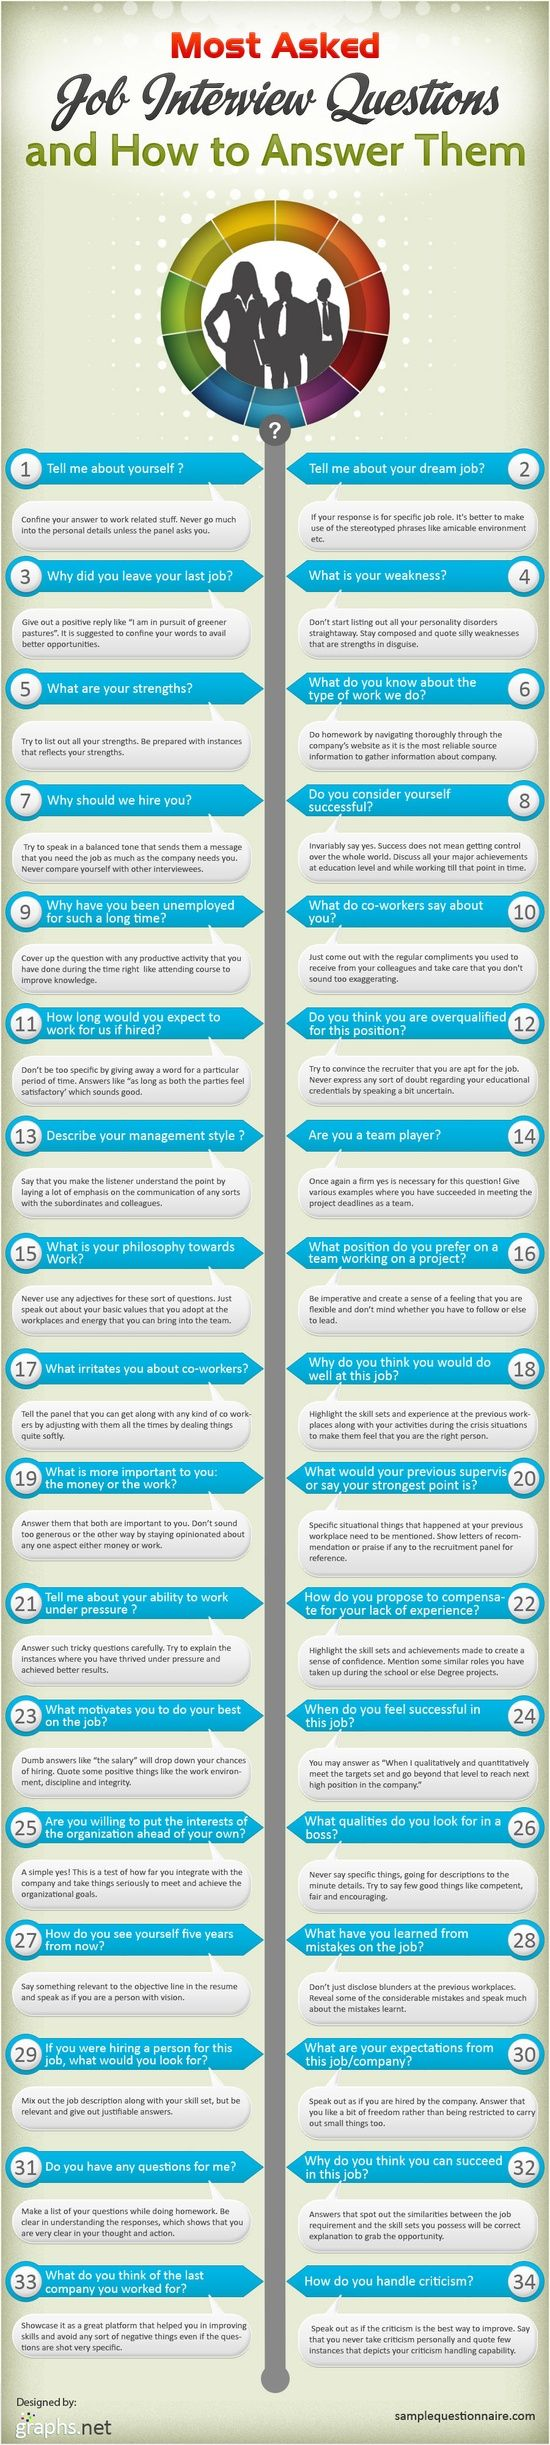 most asked job interview questions and how to answer them great most asked job interview questions and how to answer them great info career fair season kicking off future the future